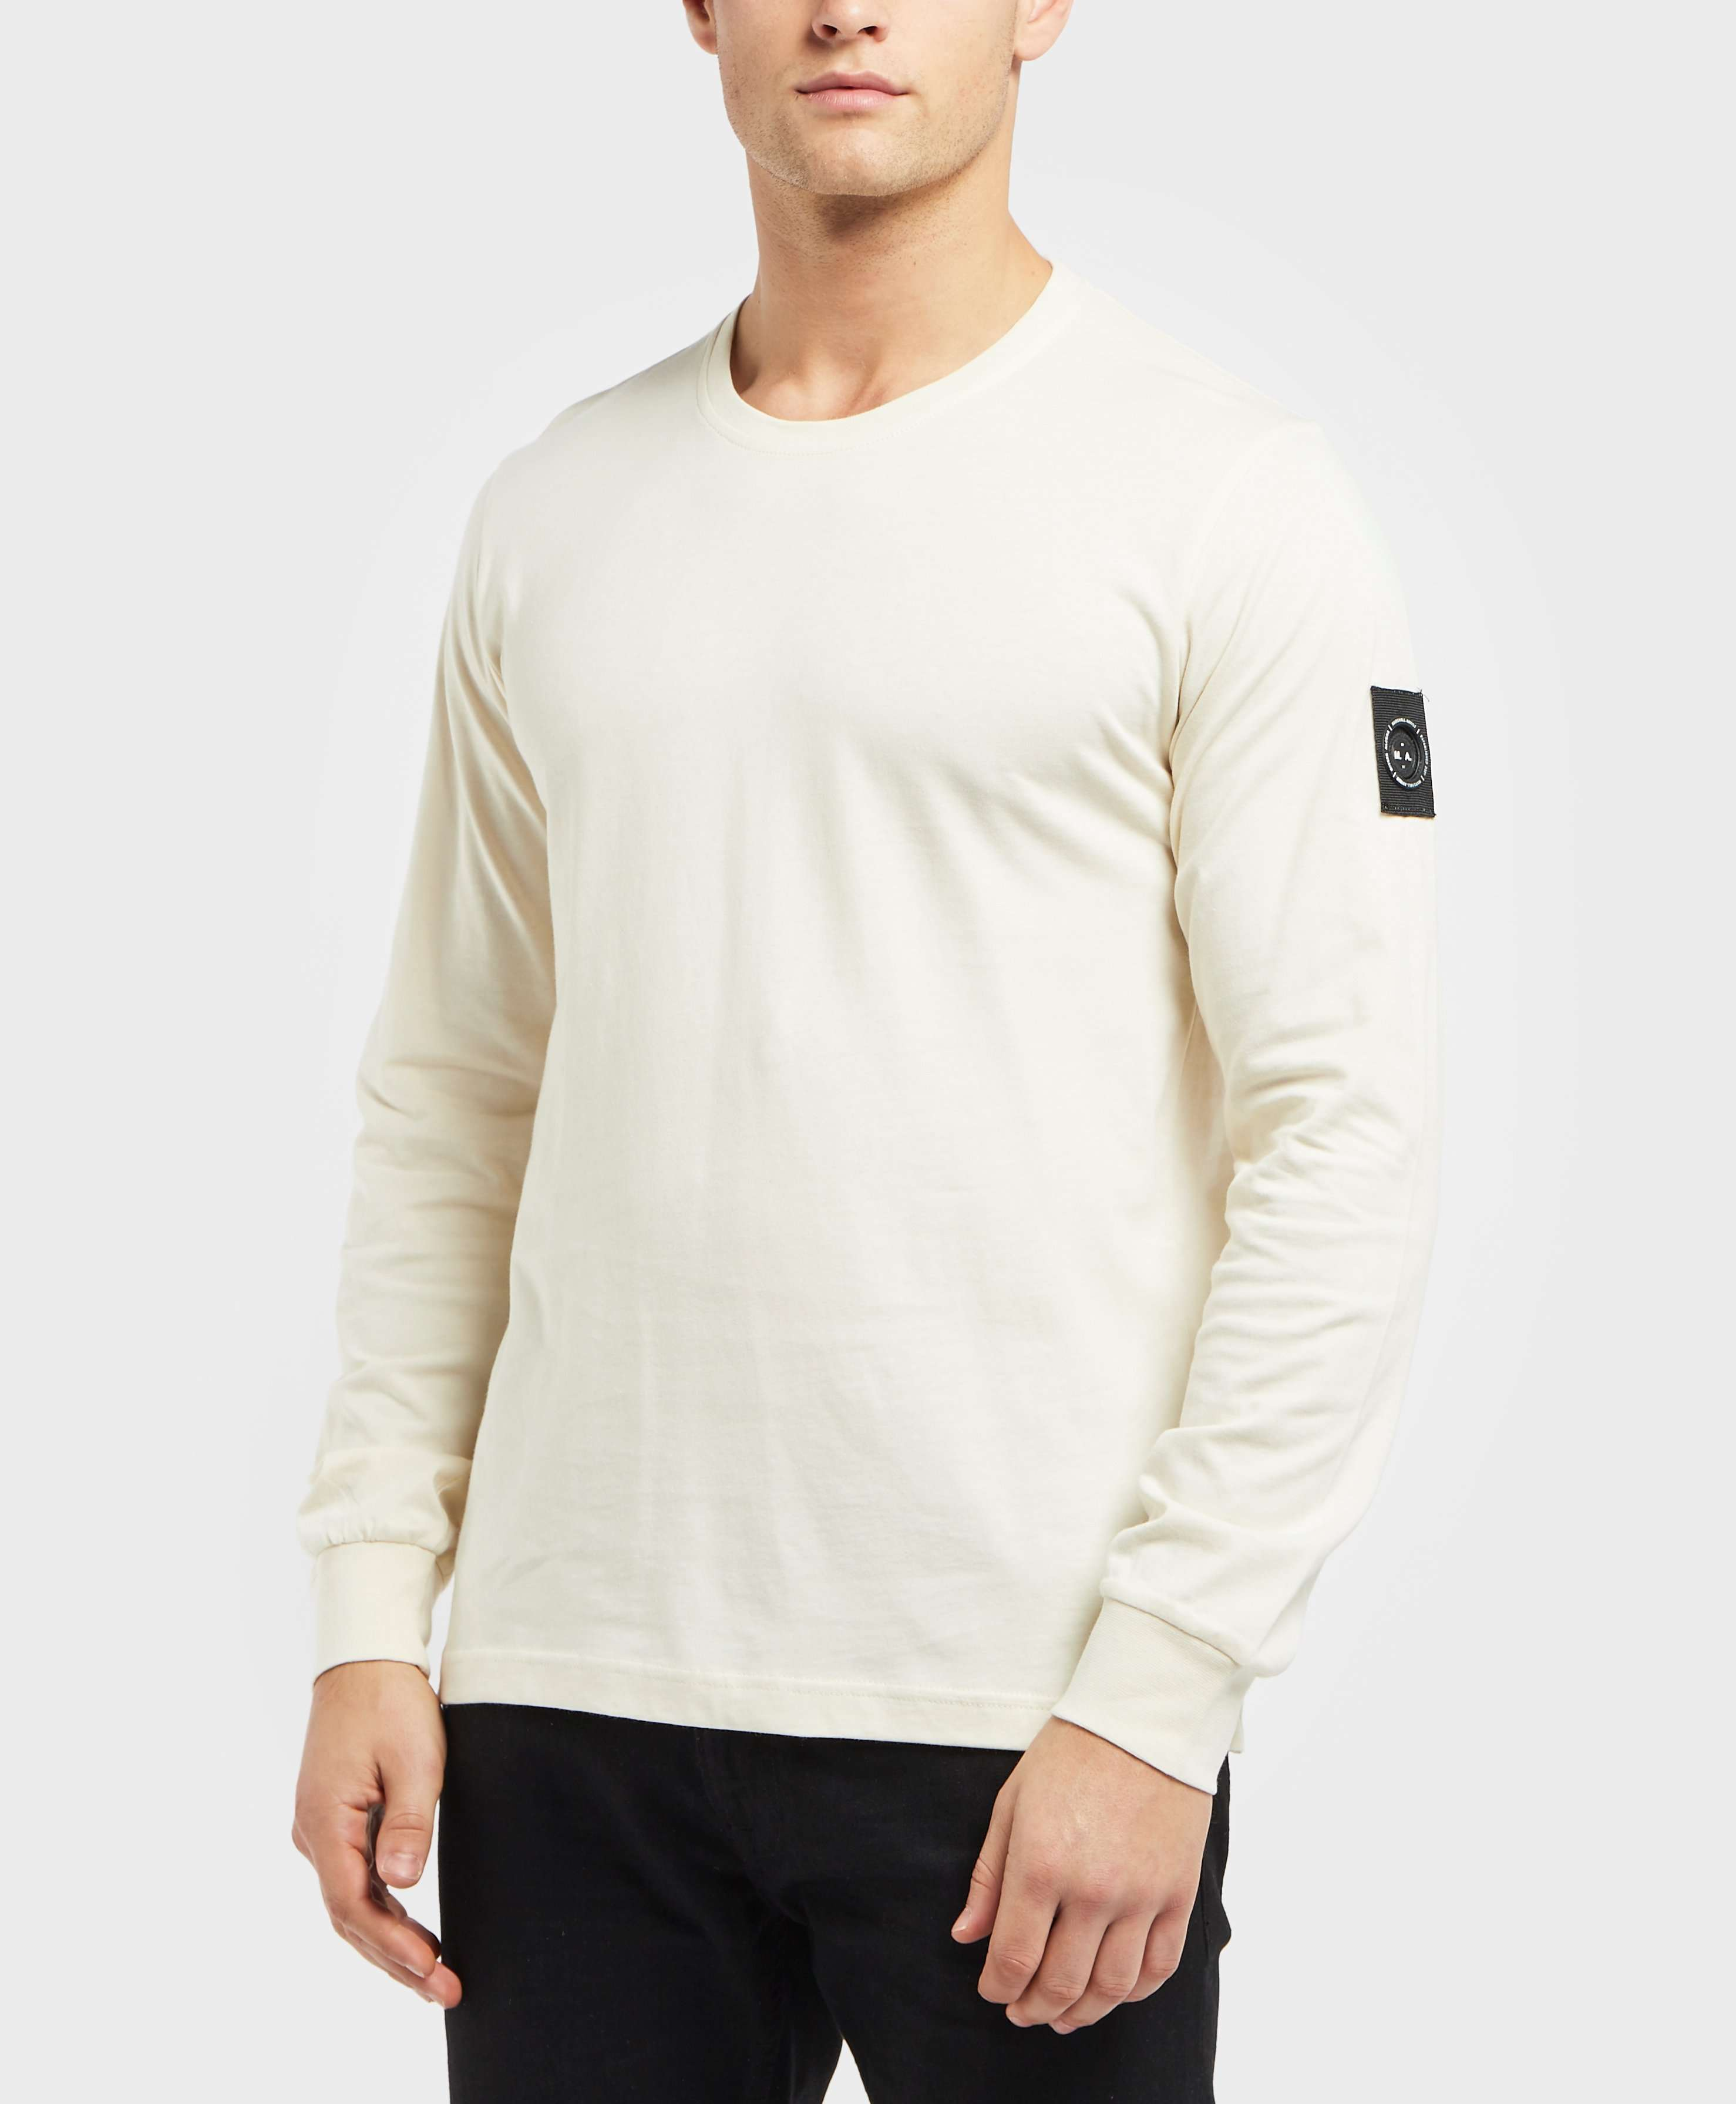 Marshall Artist Garment Dyed Long Sleeve T-Shirt - Exclusive